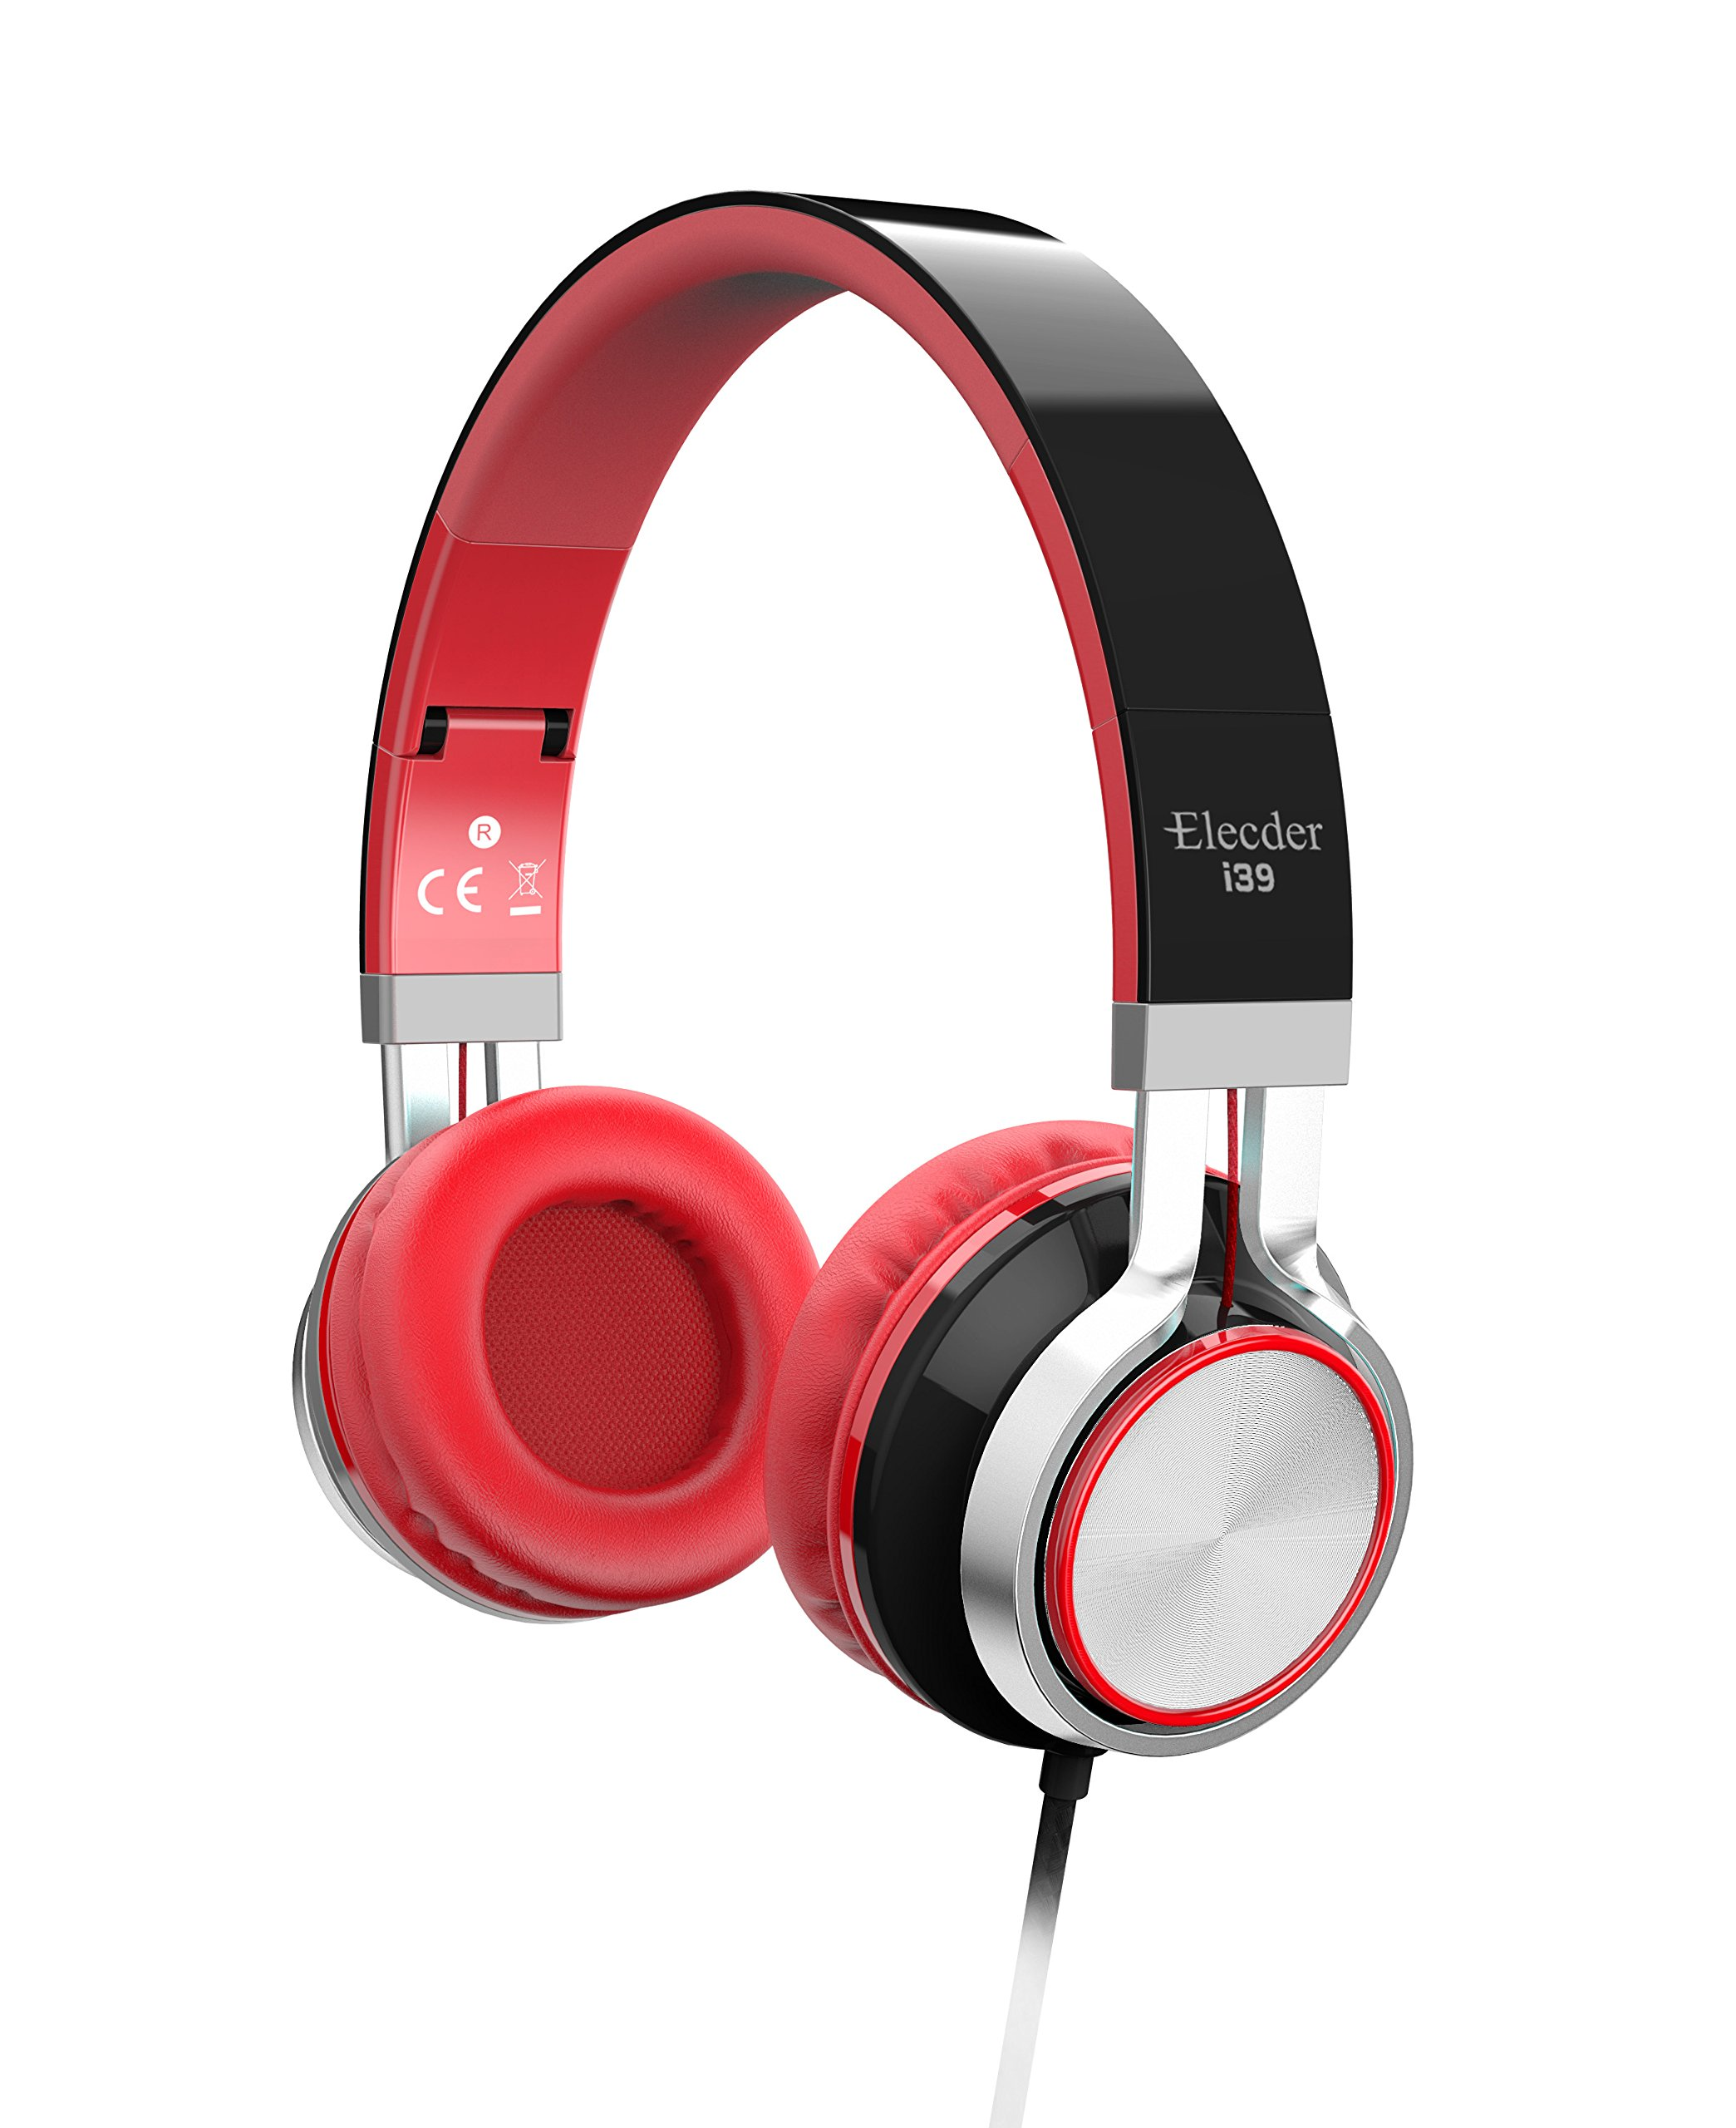 Elecder i39 Headphones with Microphone for Kids, Children, Girls, Boys, Teens, Adults, Foldable Adjustable Wired On Ear Headsets for iPad Cellphones Computer MP3/4 (Black/Red)